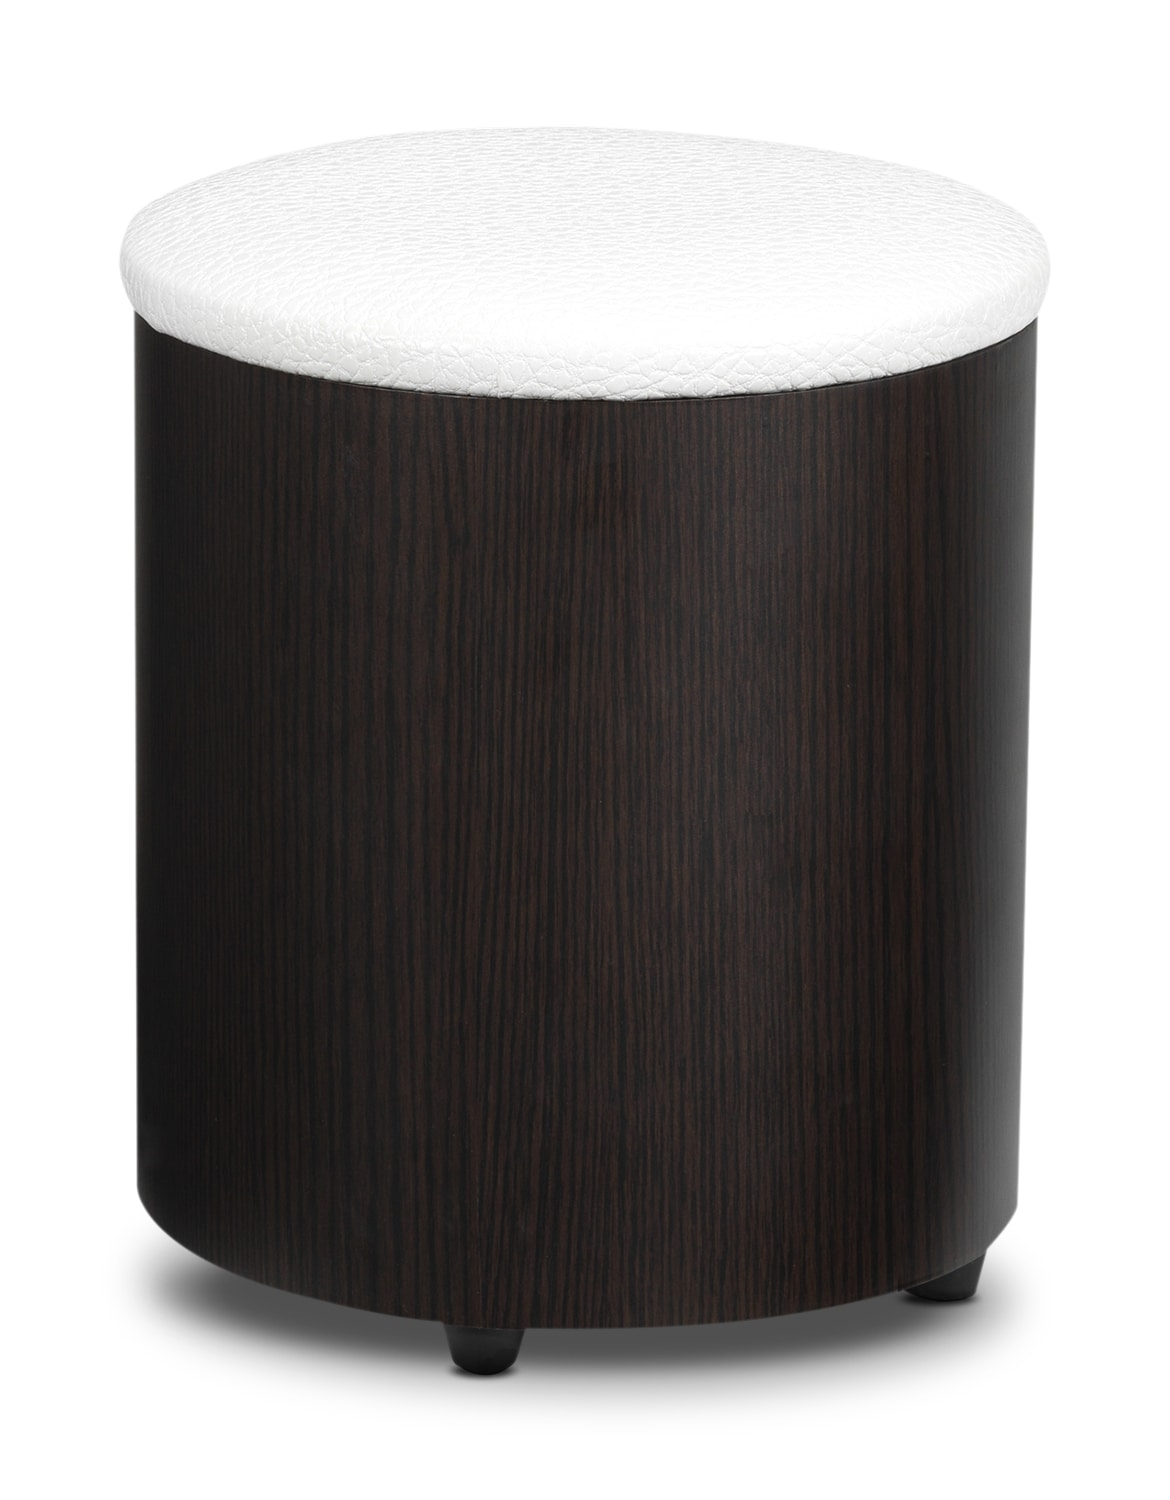 Serpentine II Stool